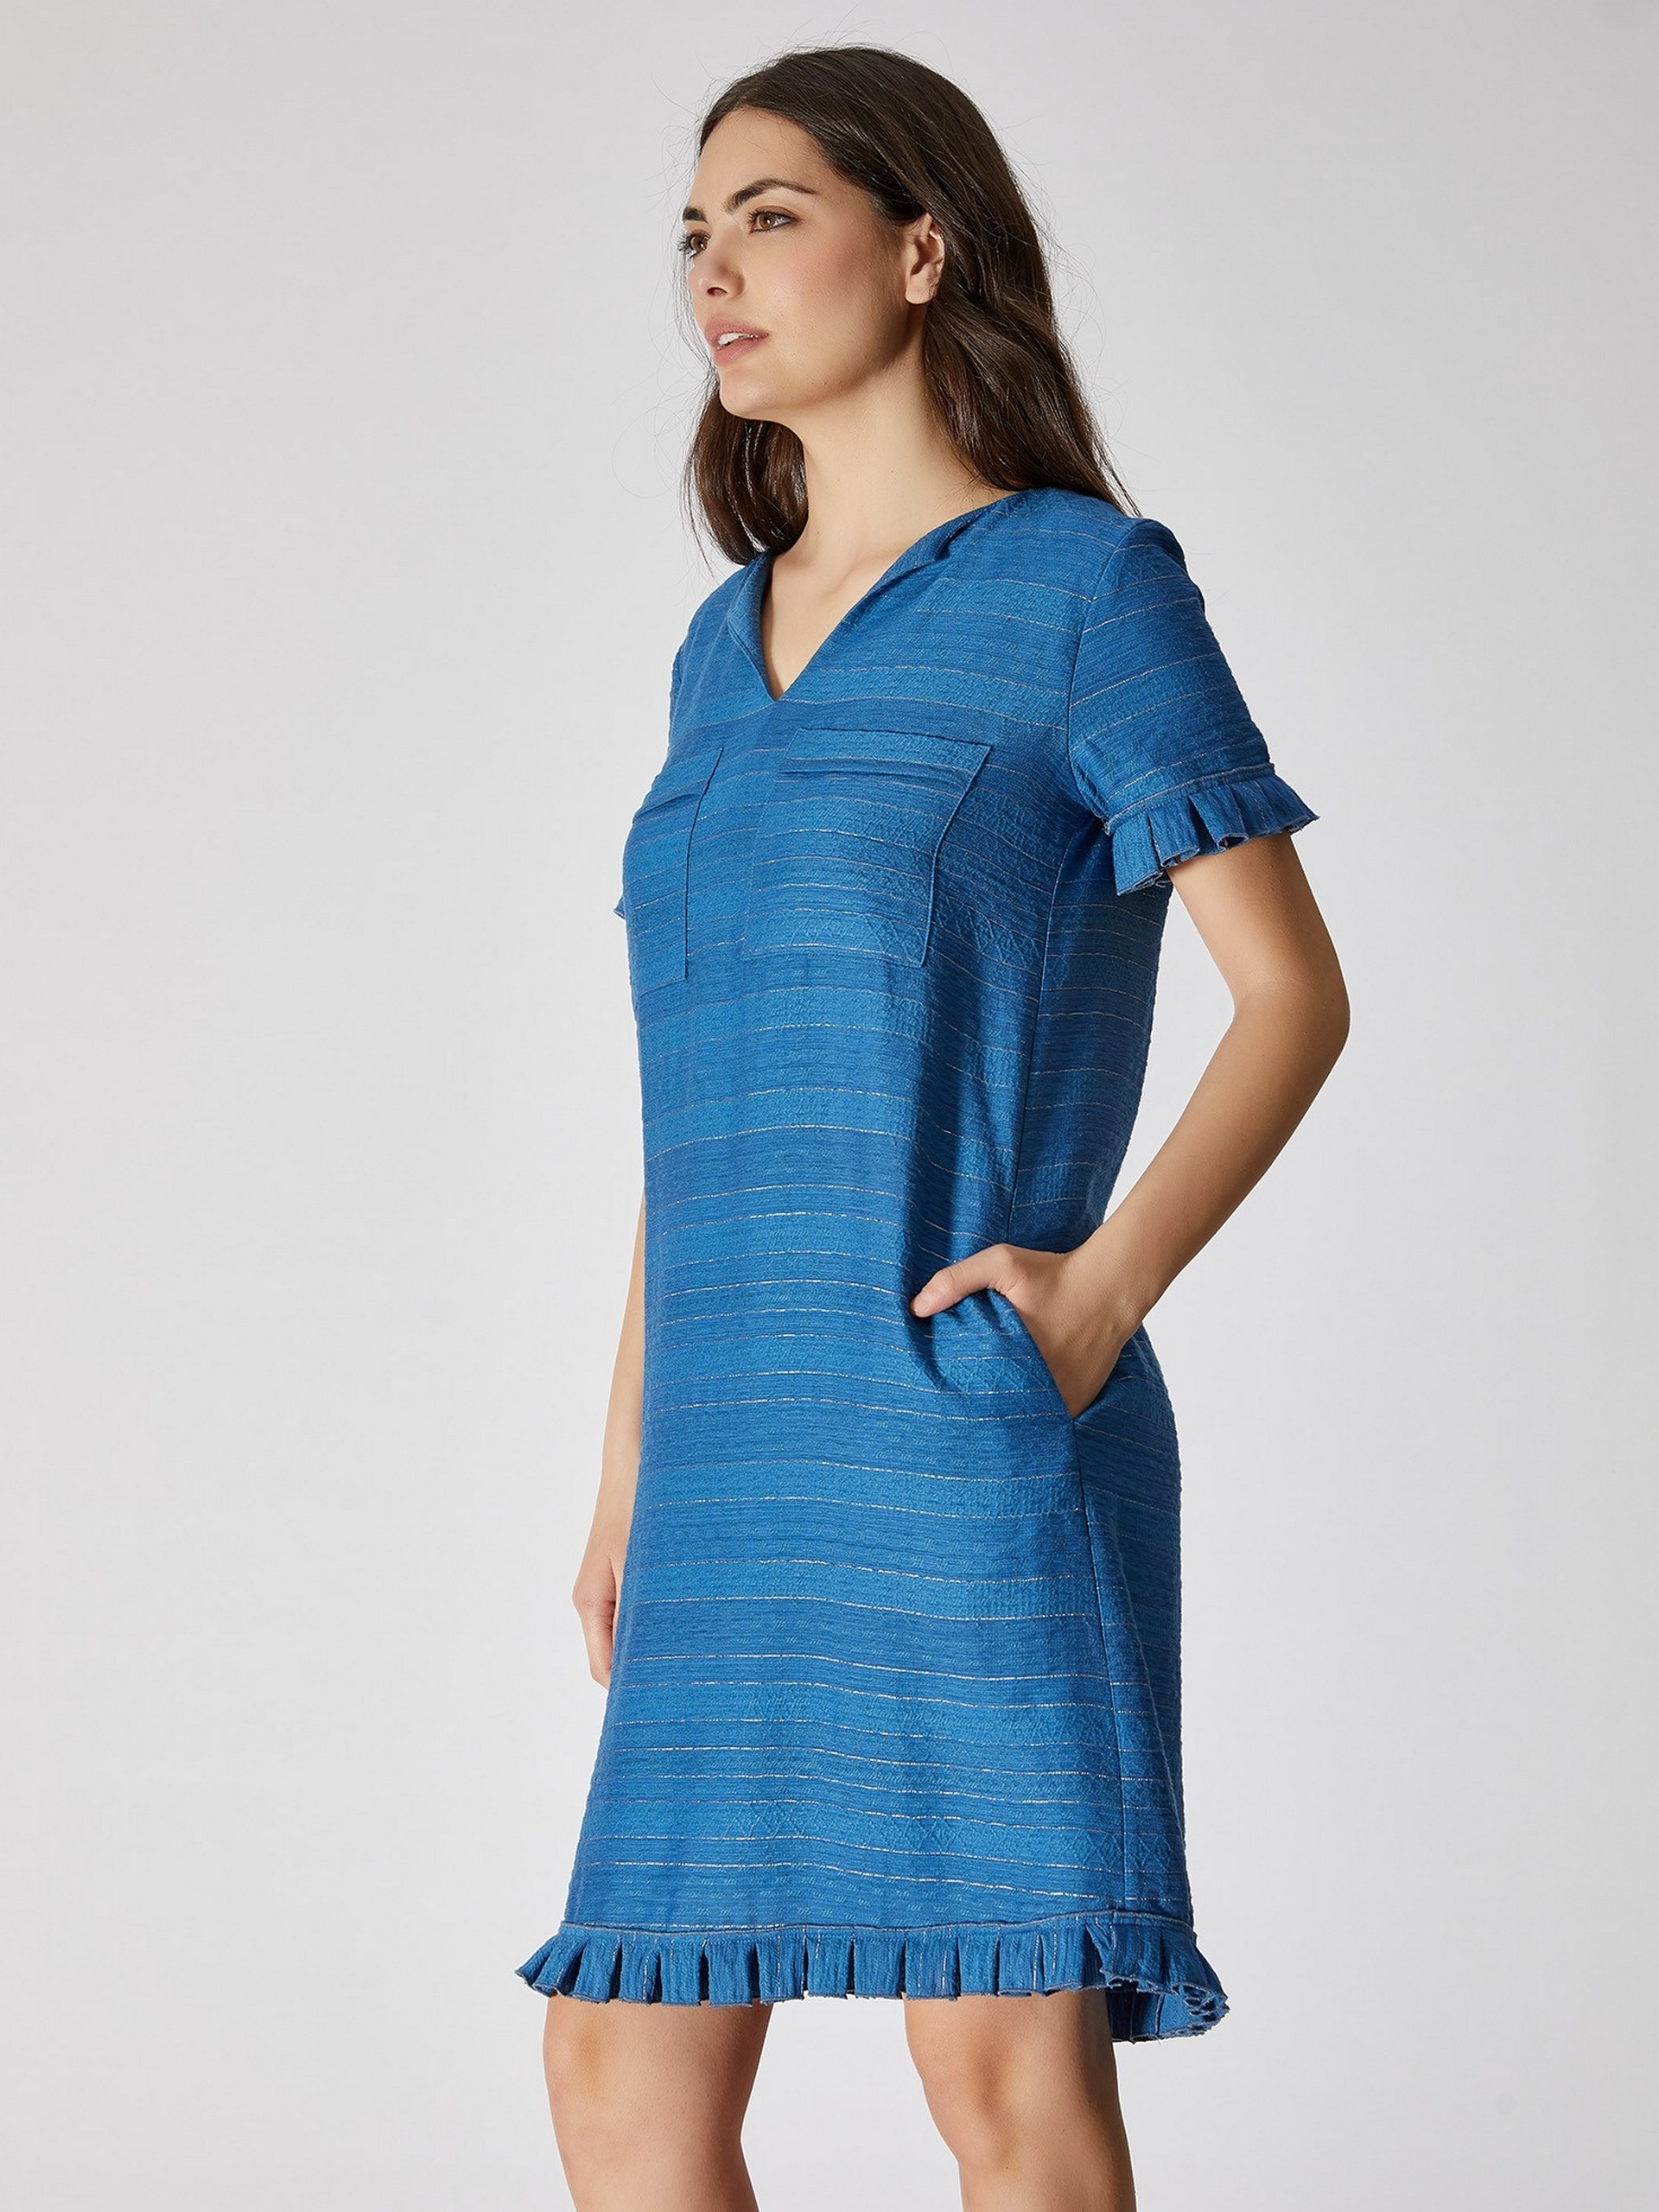 Frilly Detailed Loose Cut Dress